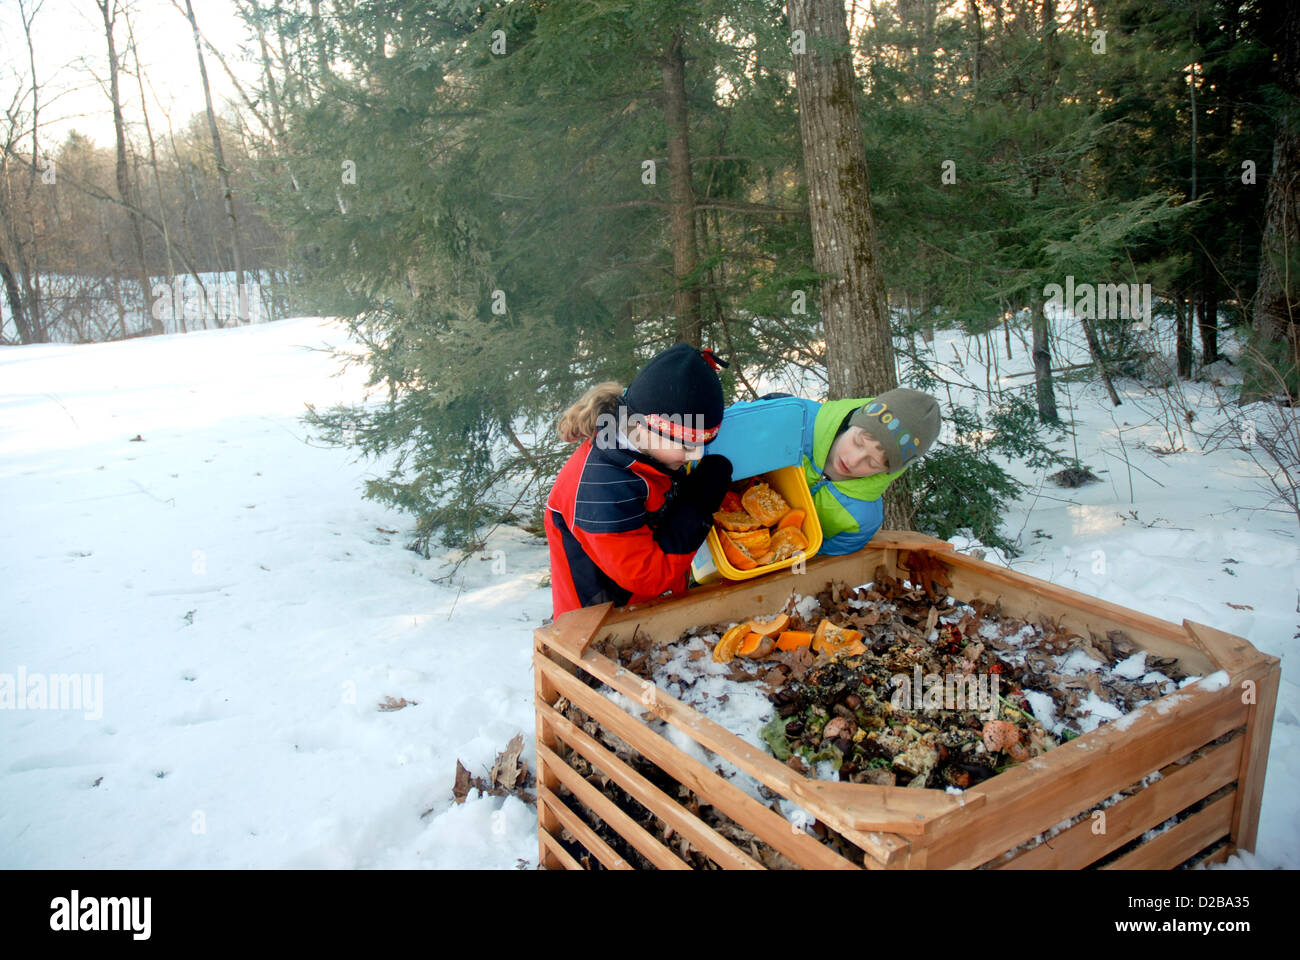 Girl Dumping Food Scraps Into Compost Bin - Stock Image